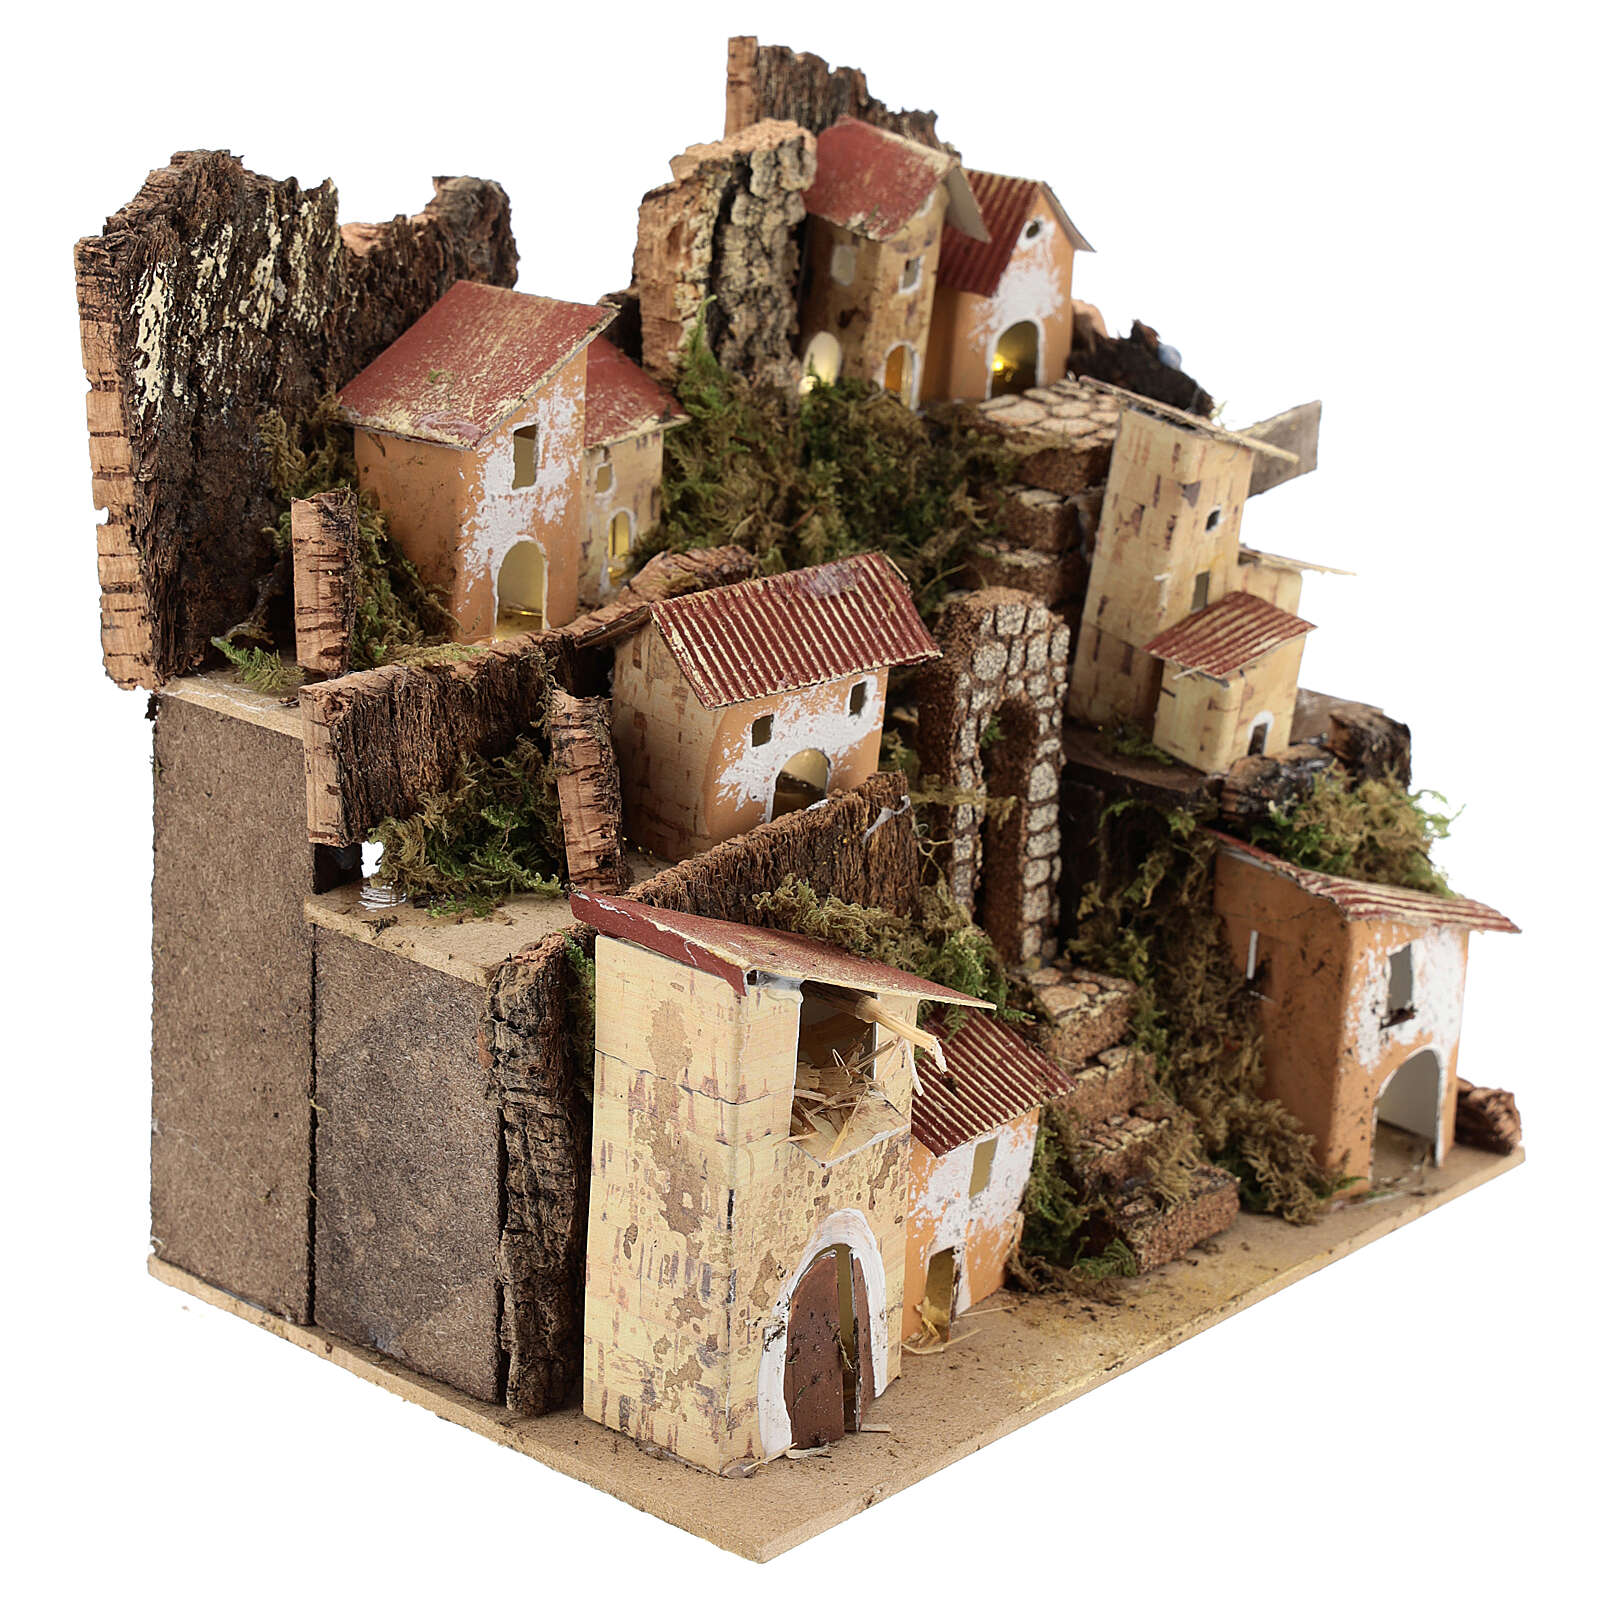 Miniature Italian village with 10 lights battery powered, 20x20x15 cm 4